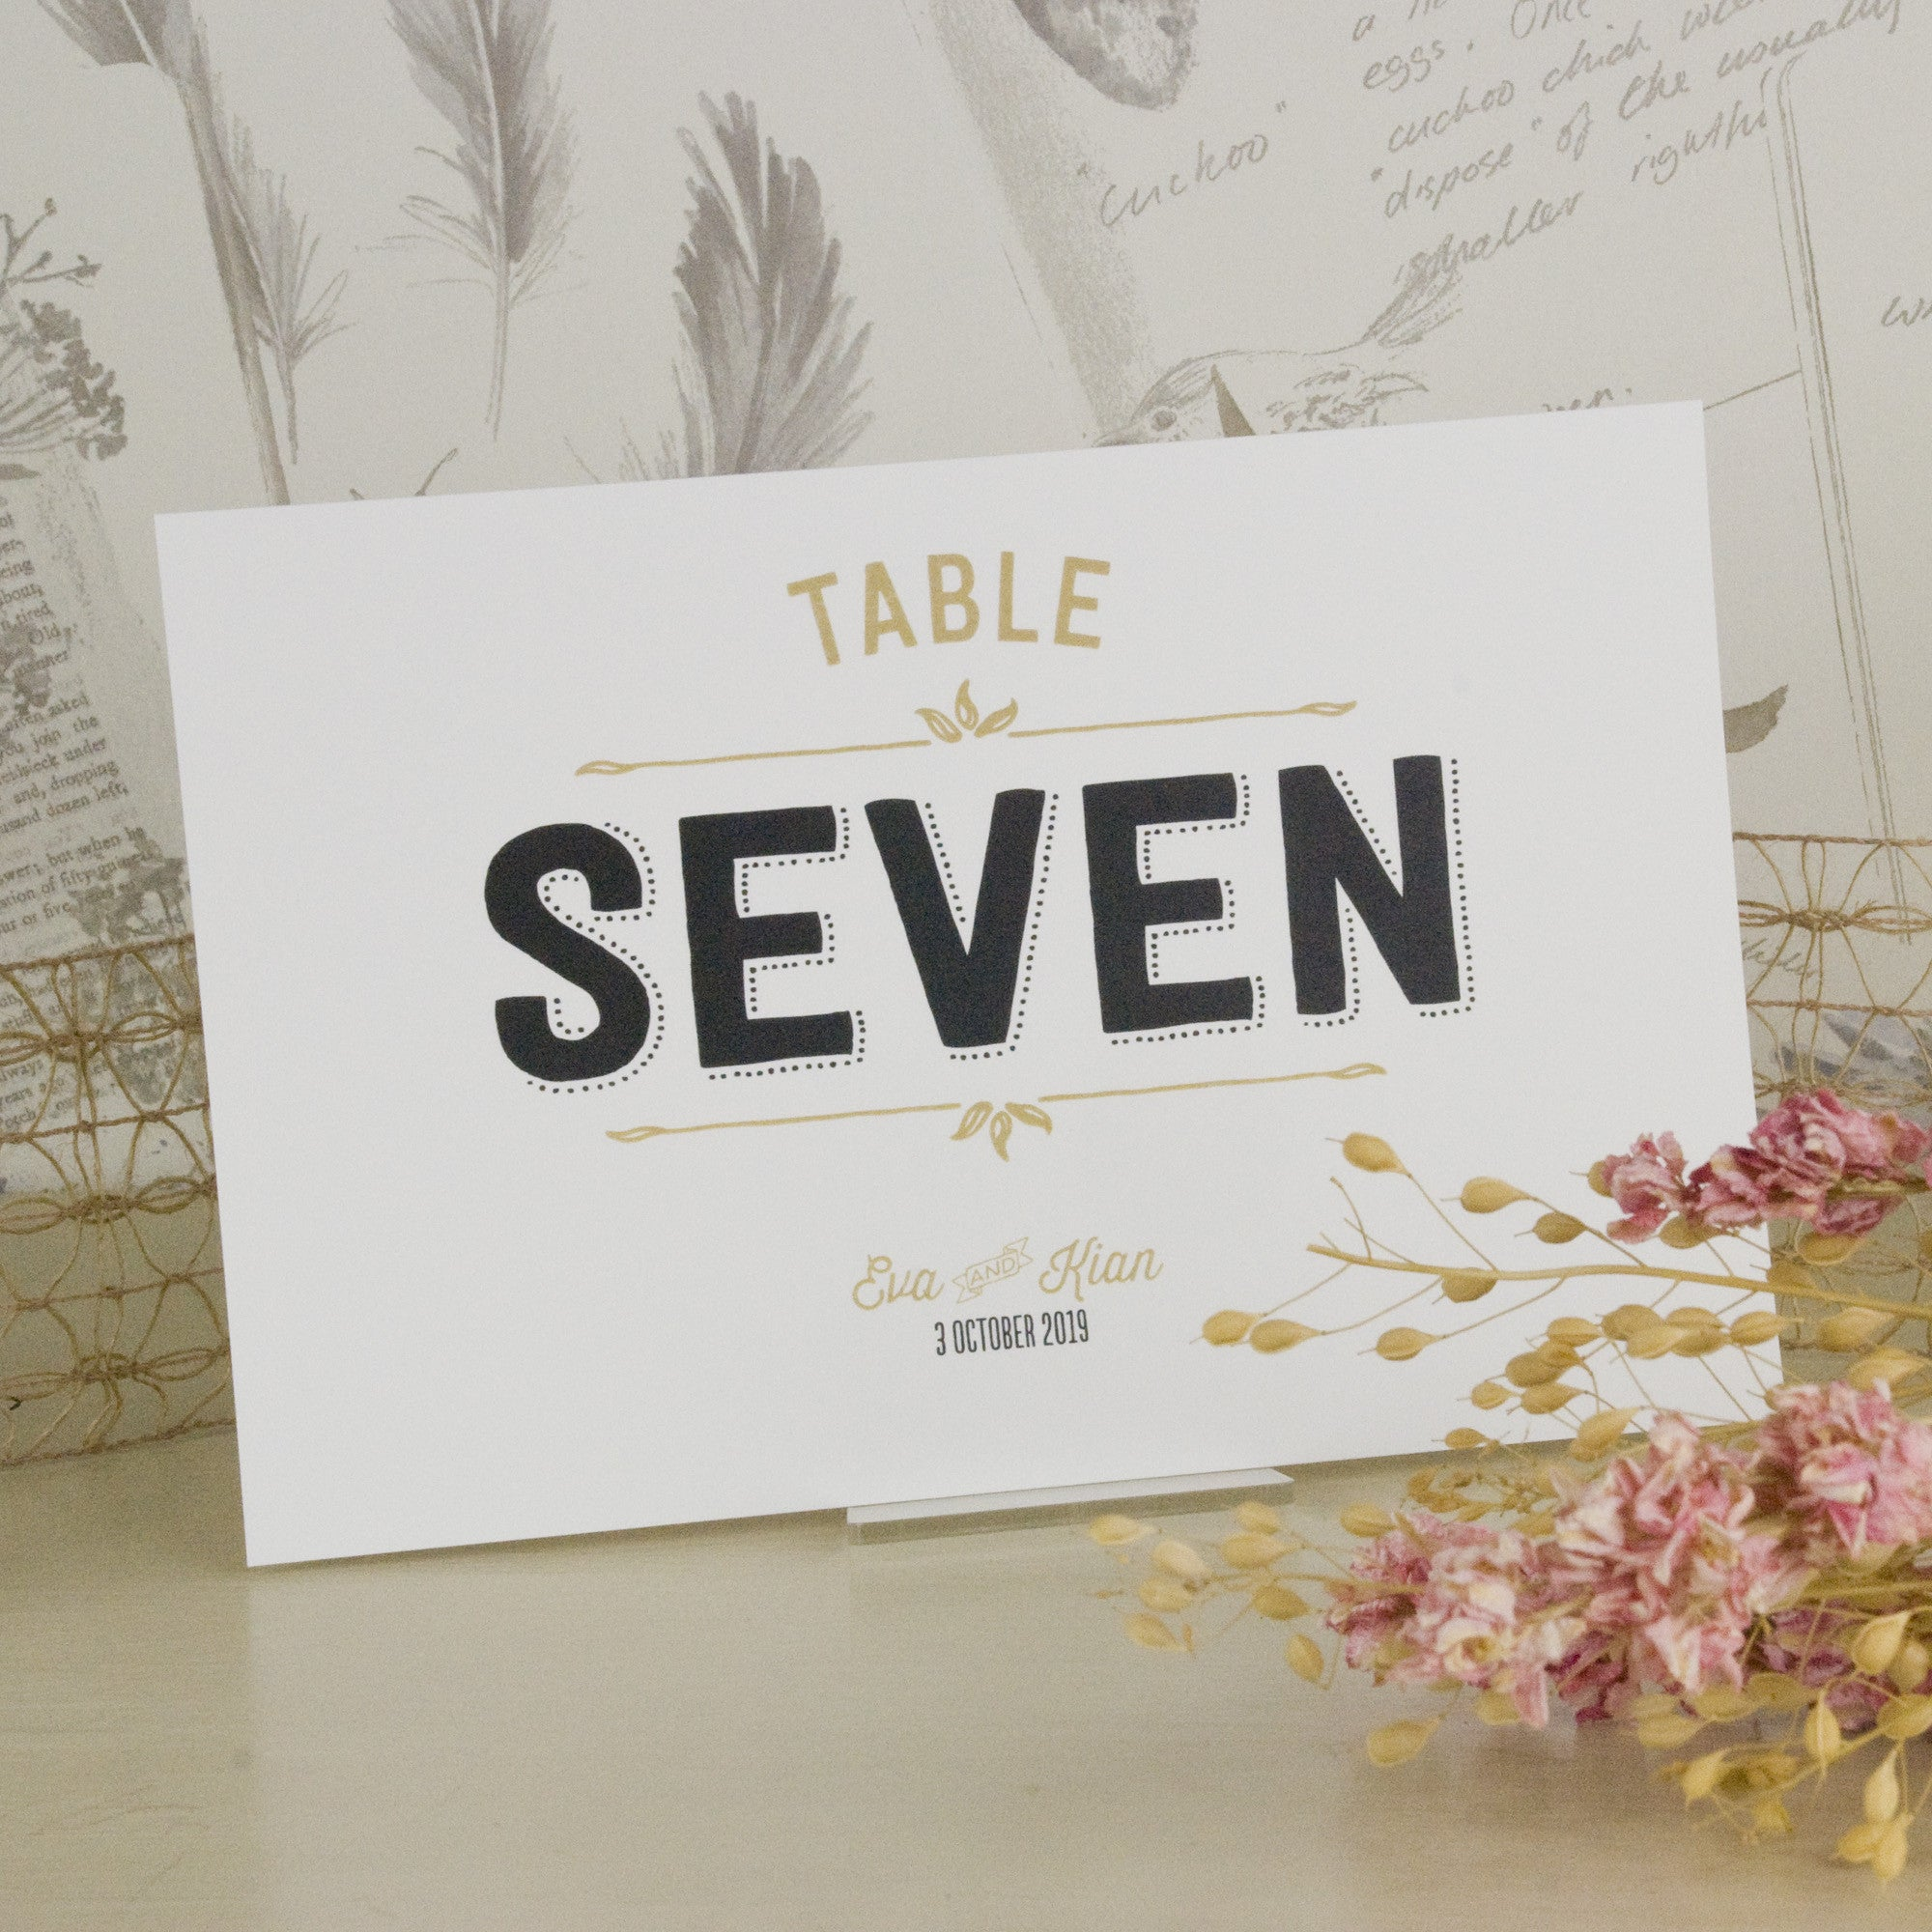 Ideas For Wedding Table Names: Sketch Table Name Cards